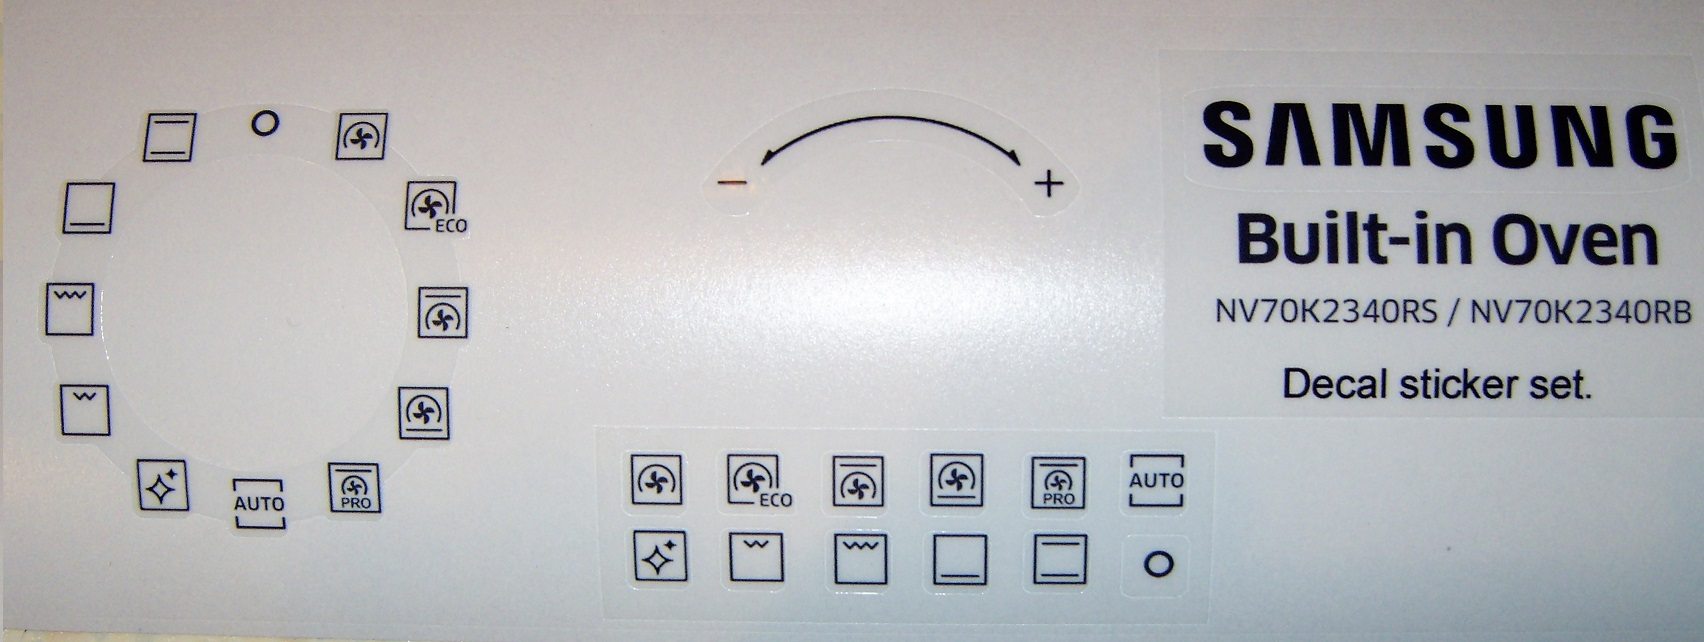 Samsung Oven NV70K2340RS decal sticker set, may fit others.